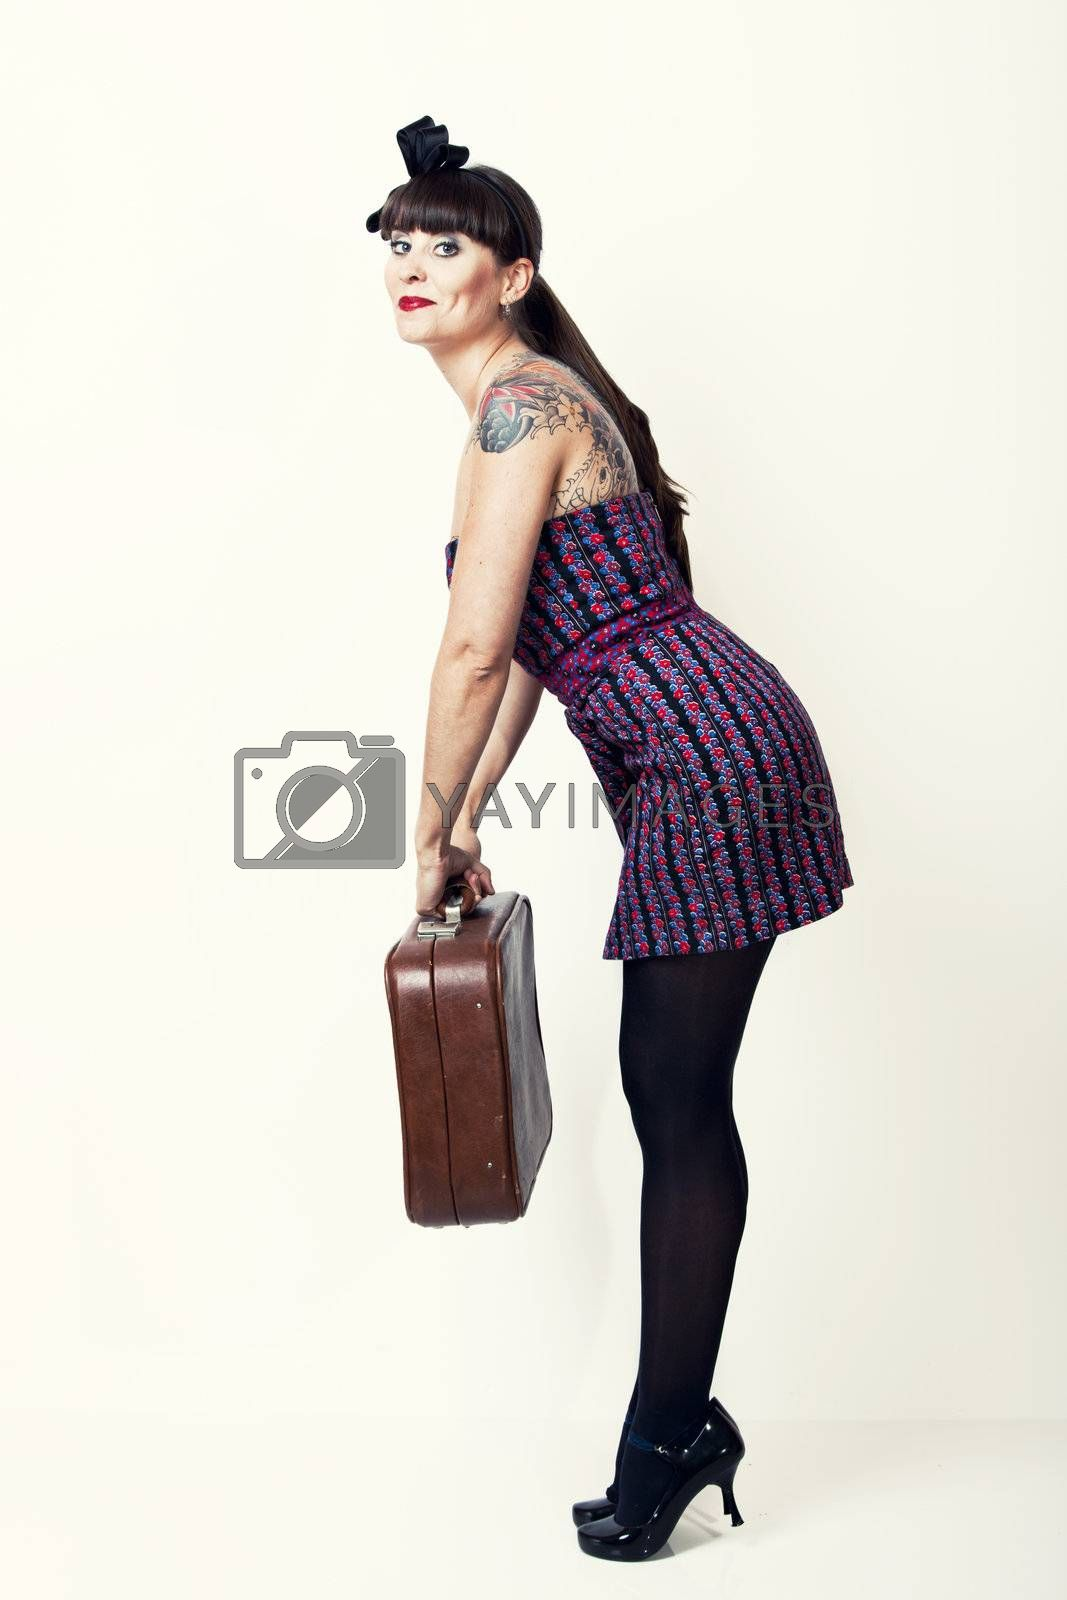 Portrait of a beautiful woman with a vintage look posing with a suitcase